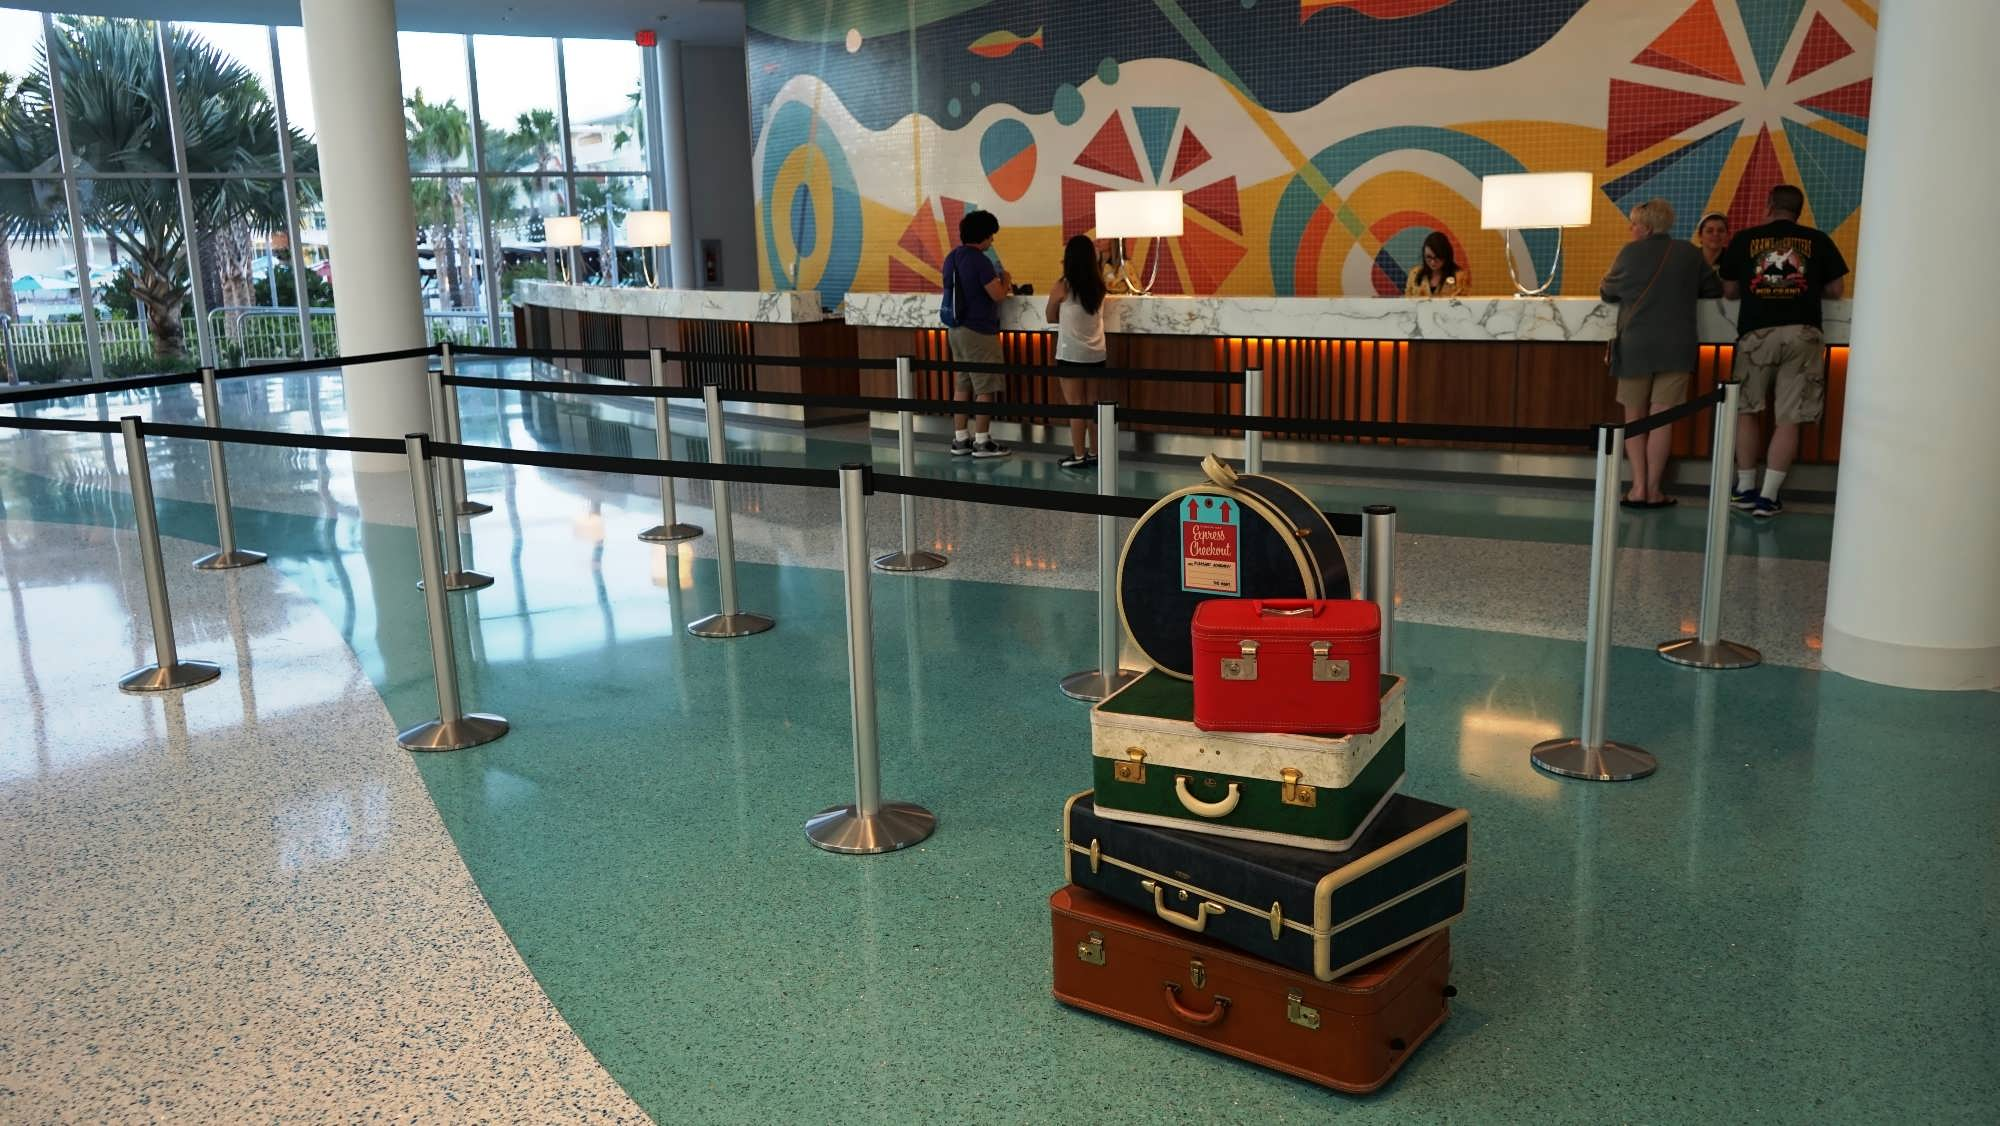 The check-in area at Cabana Bay